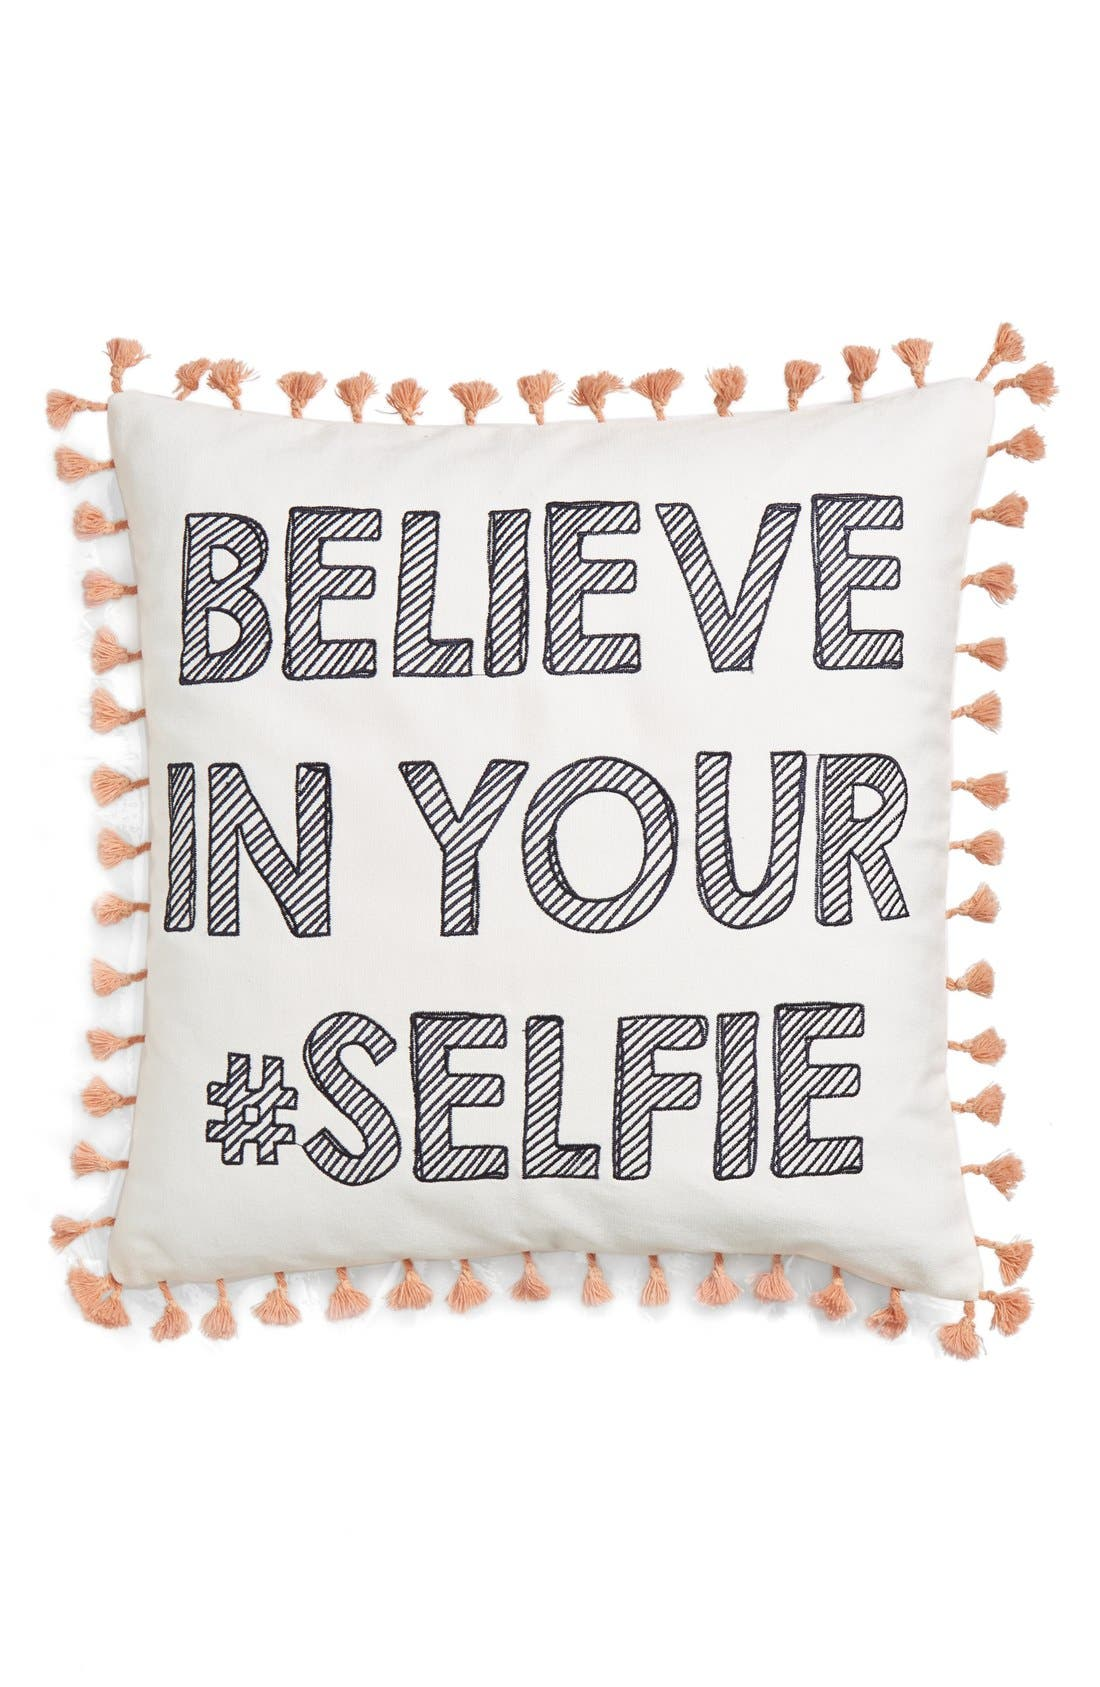 'Believe In Your #Selfie' Pillow,                             Main thumbnail 1, color,                             100